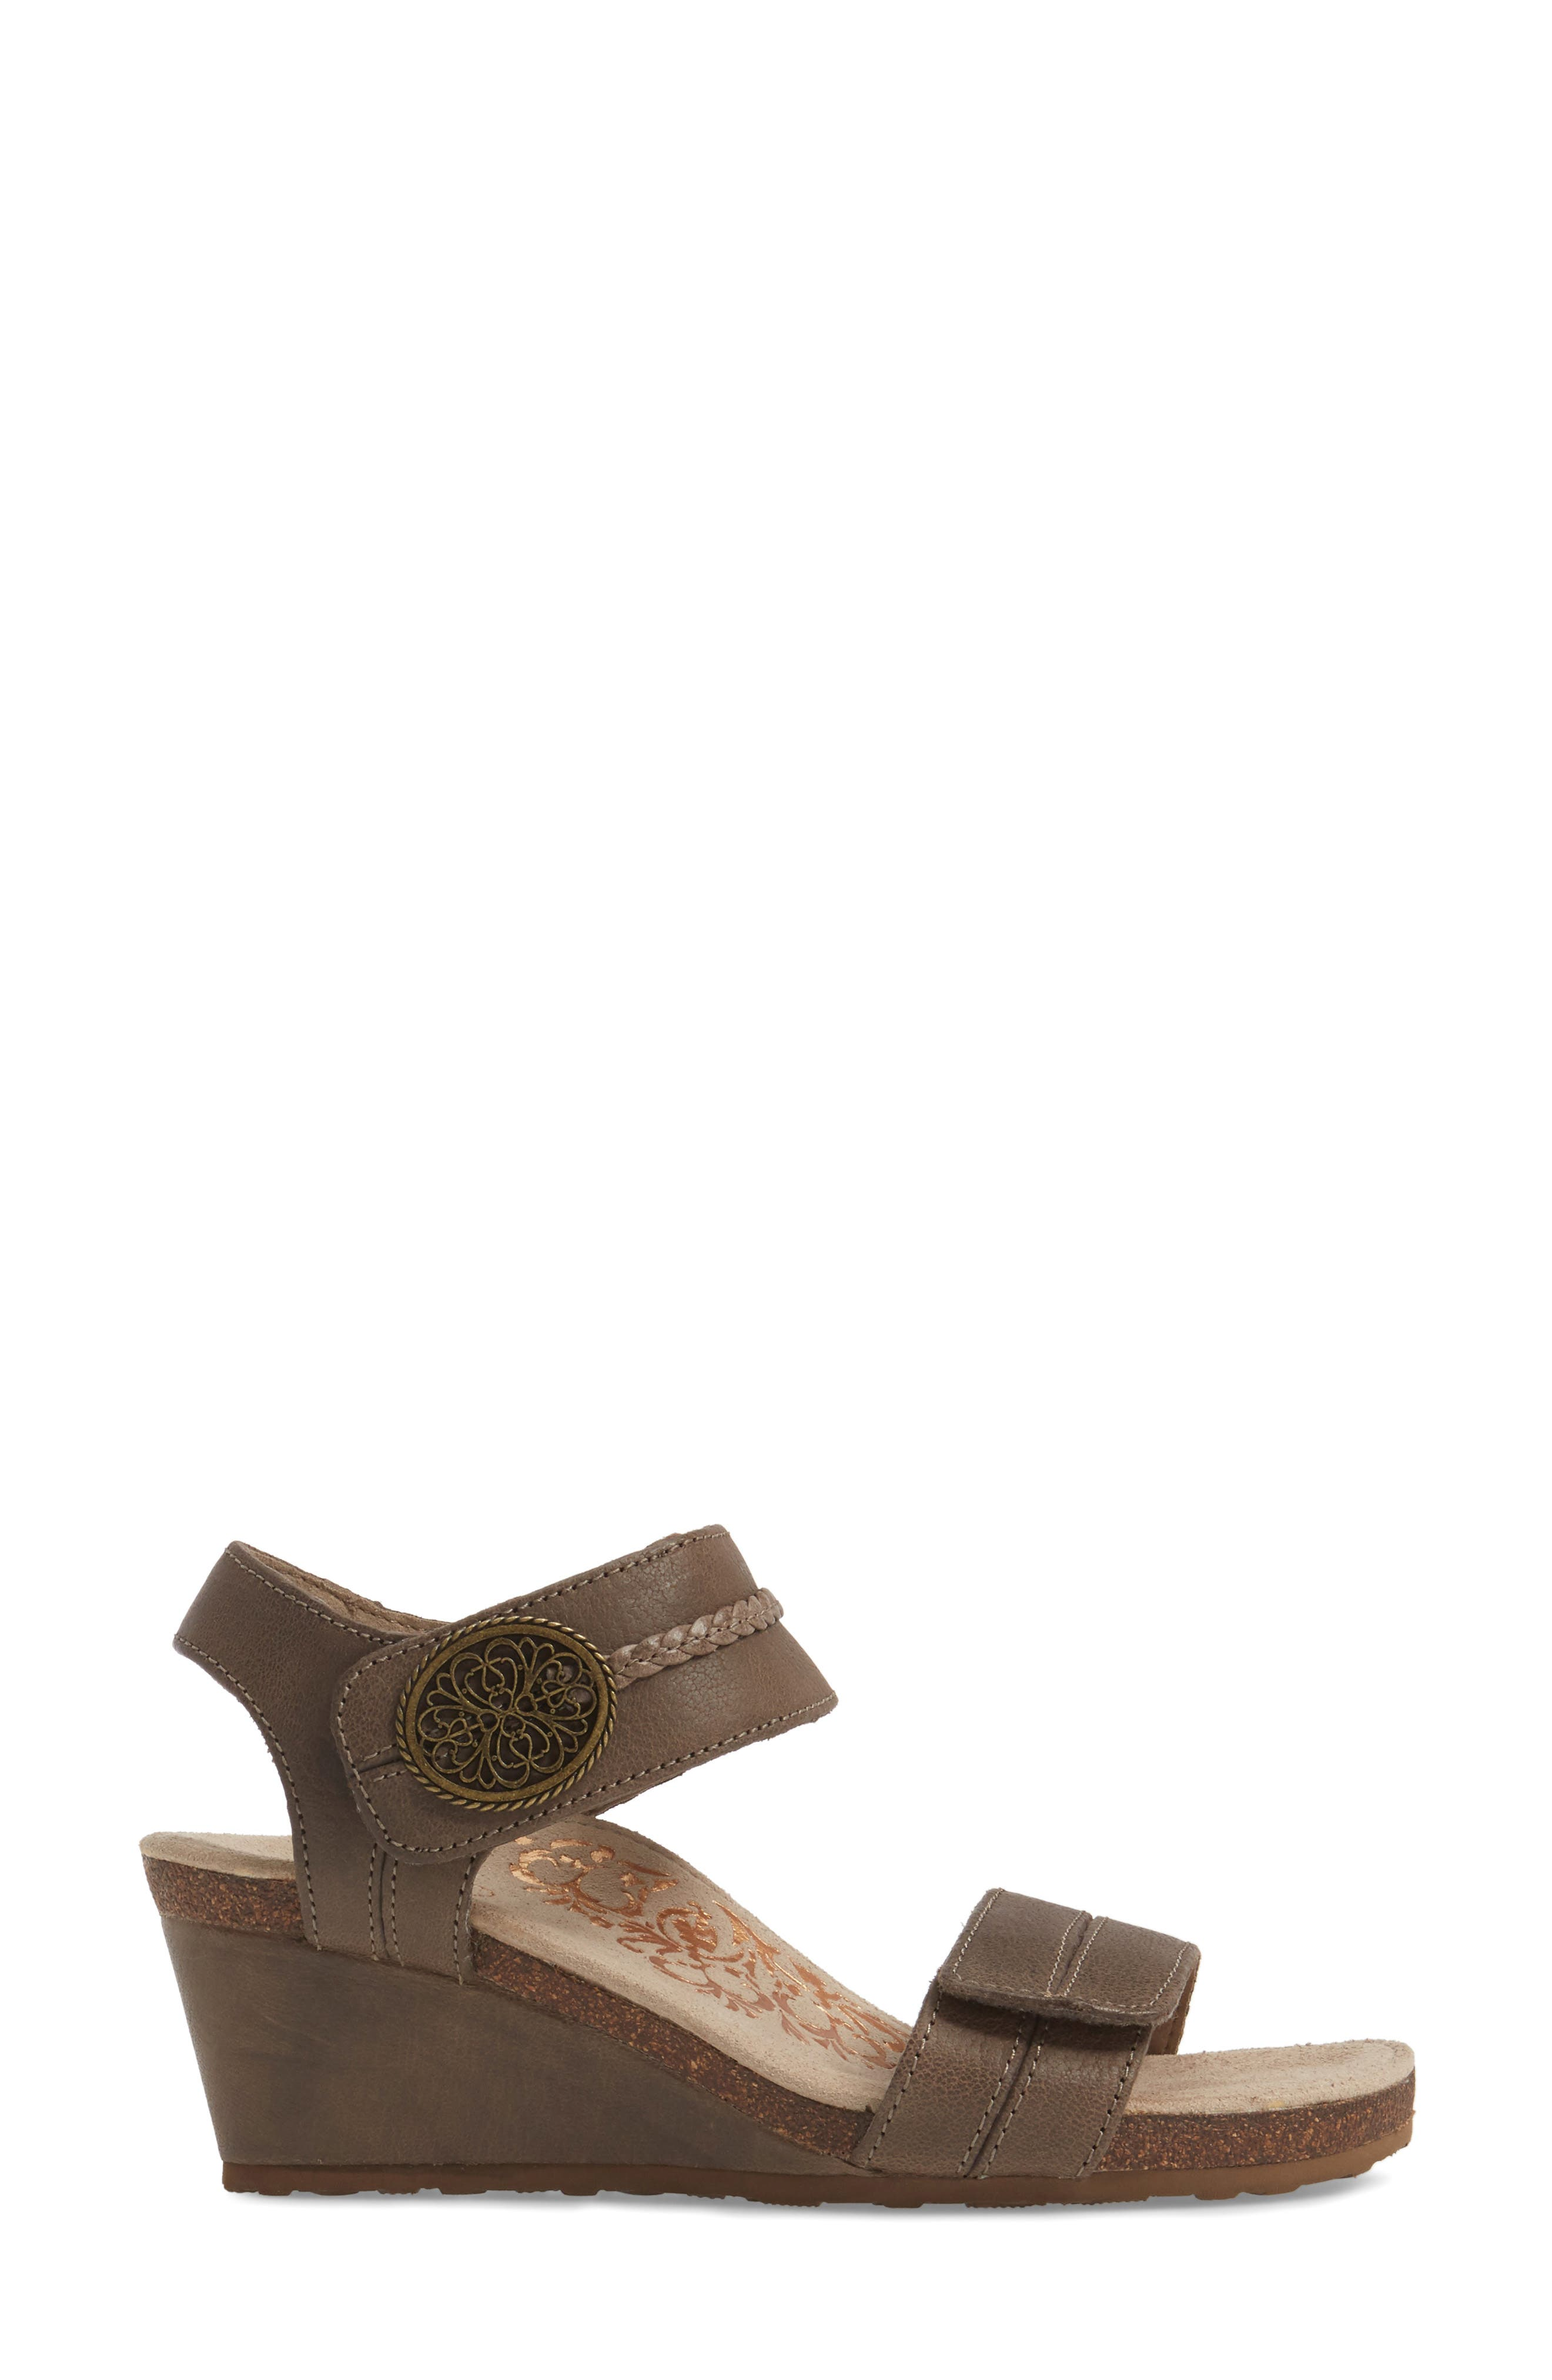 'Arielle' Leather Wedge Sandal,                             Alternate thumbnail 3, color,                             STONE LEATHER